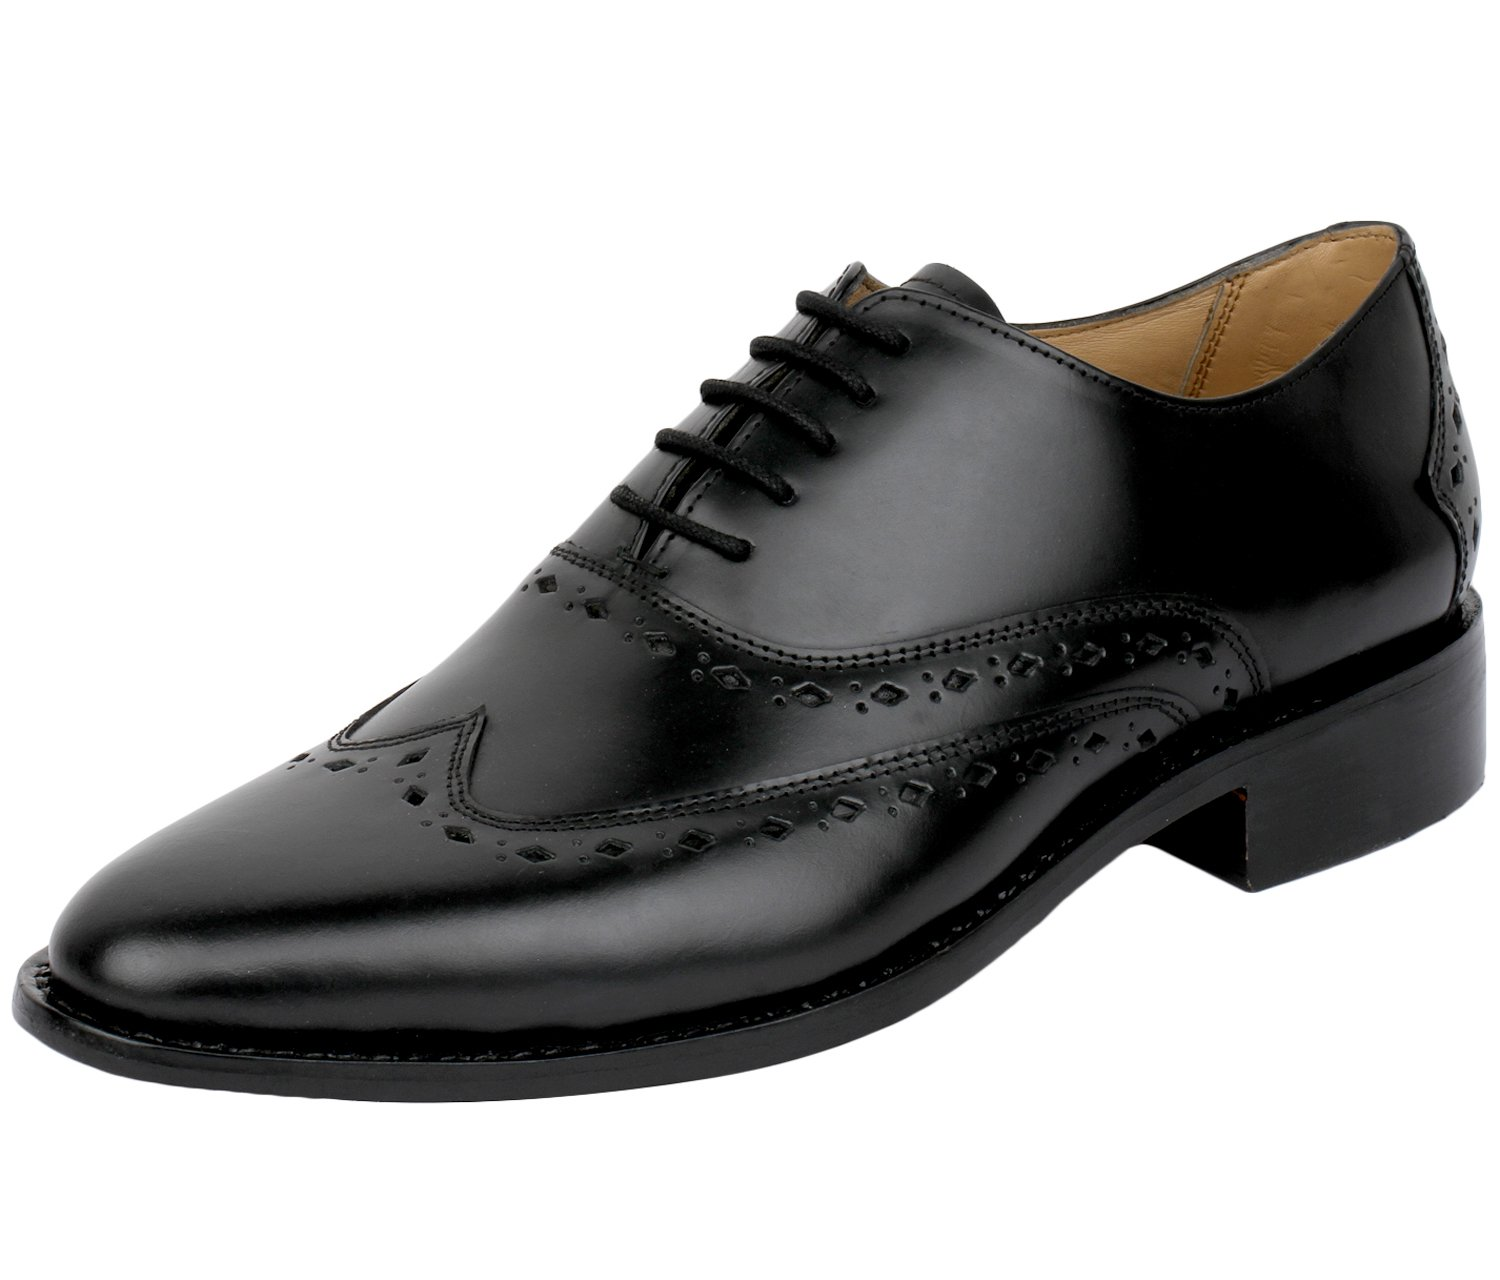 Lethato Wingtip Oxford Goodyear Welted Formal Handmade Leather Dress Shoes- Black